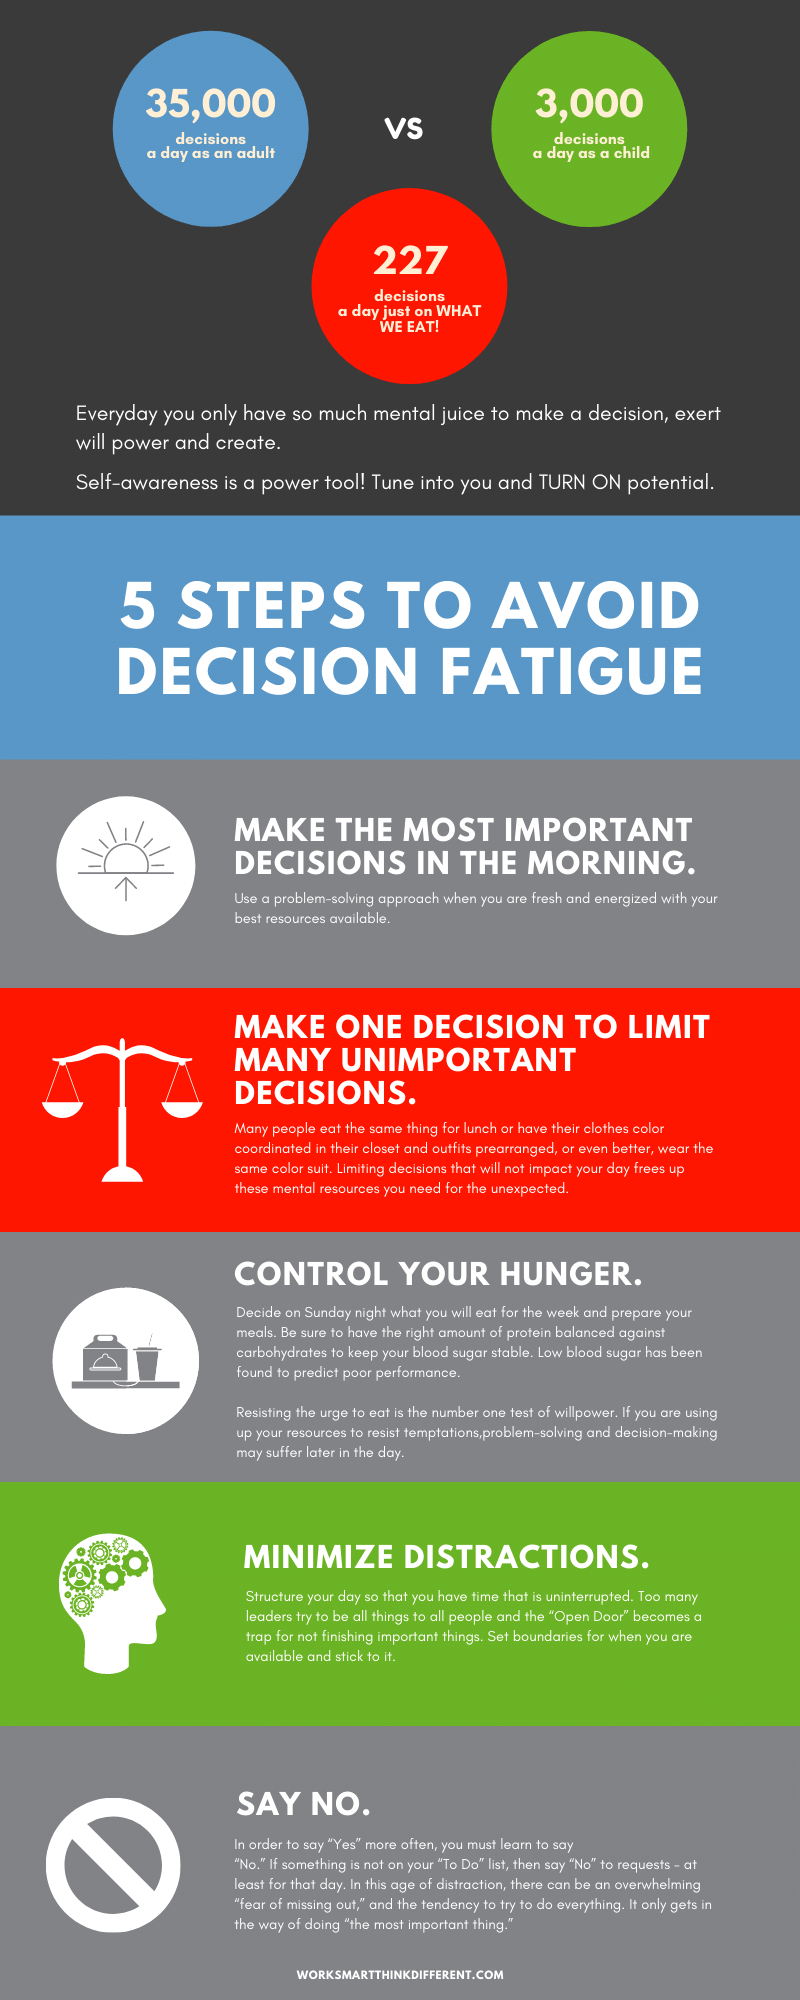 5 Steps to Avoid Decision Fatigue